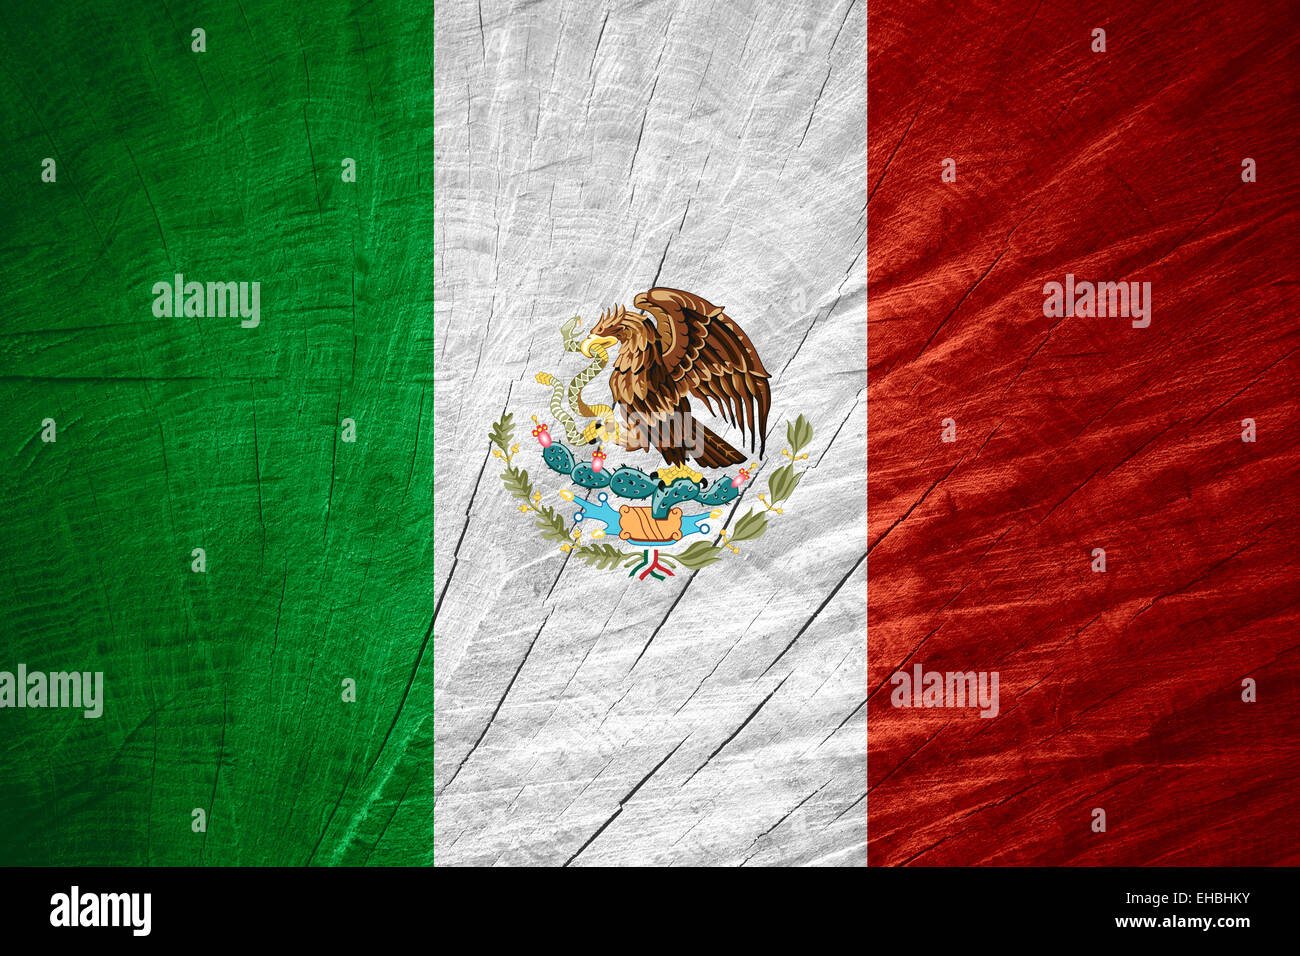 Mexico flag or Mexican banner on wooden texture - Stock Image